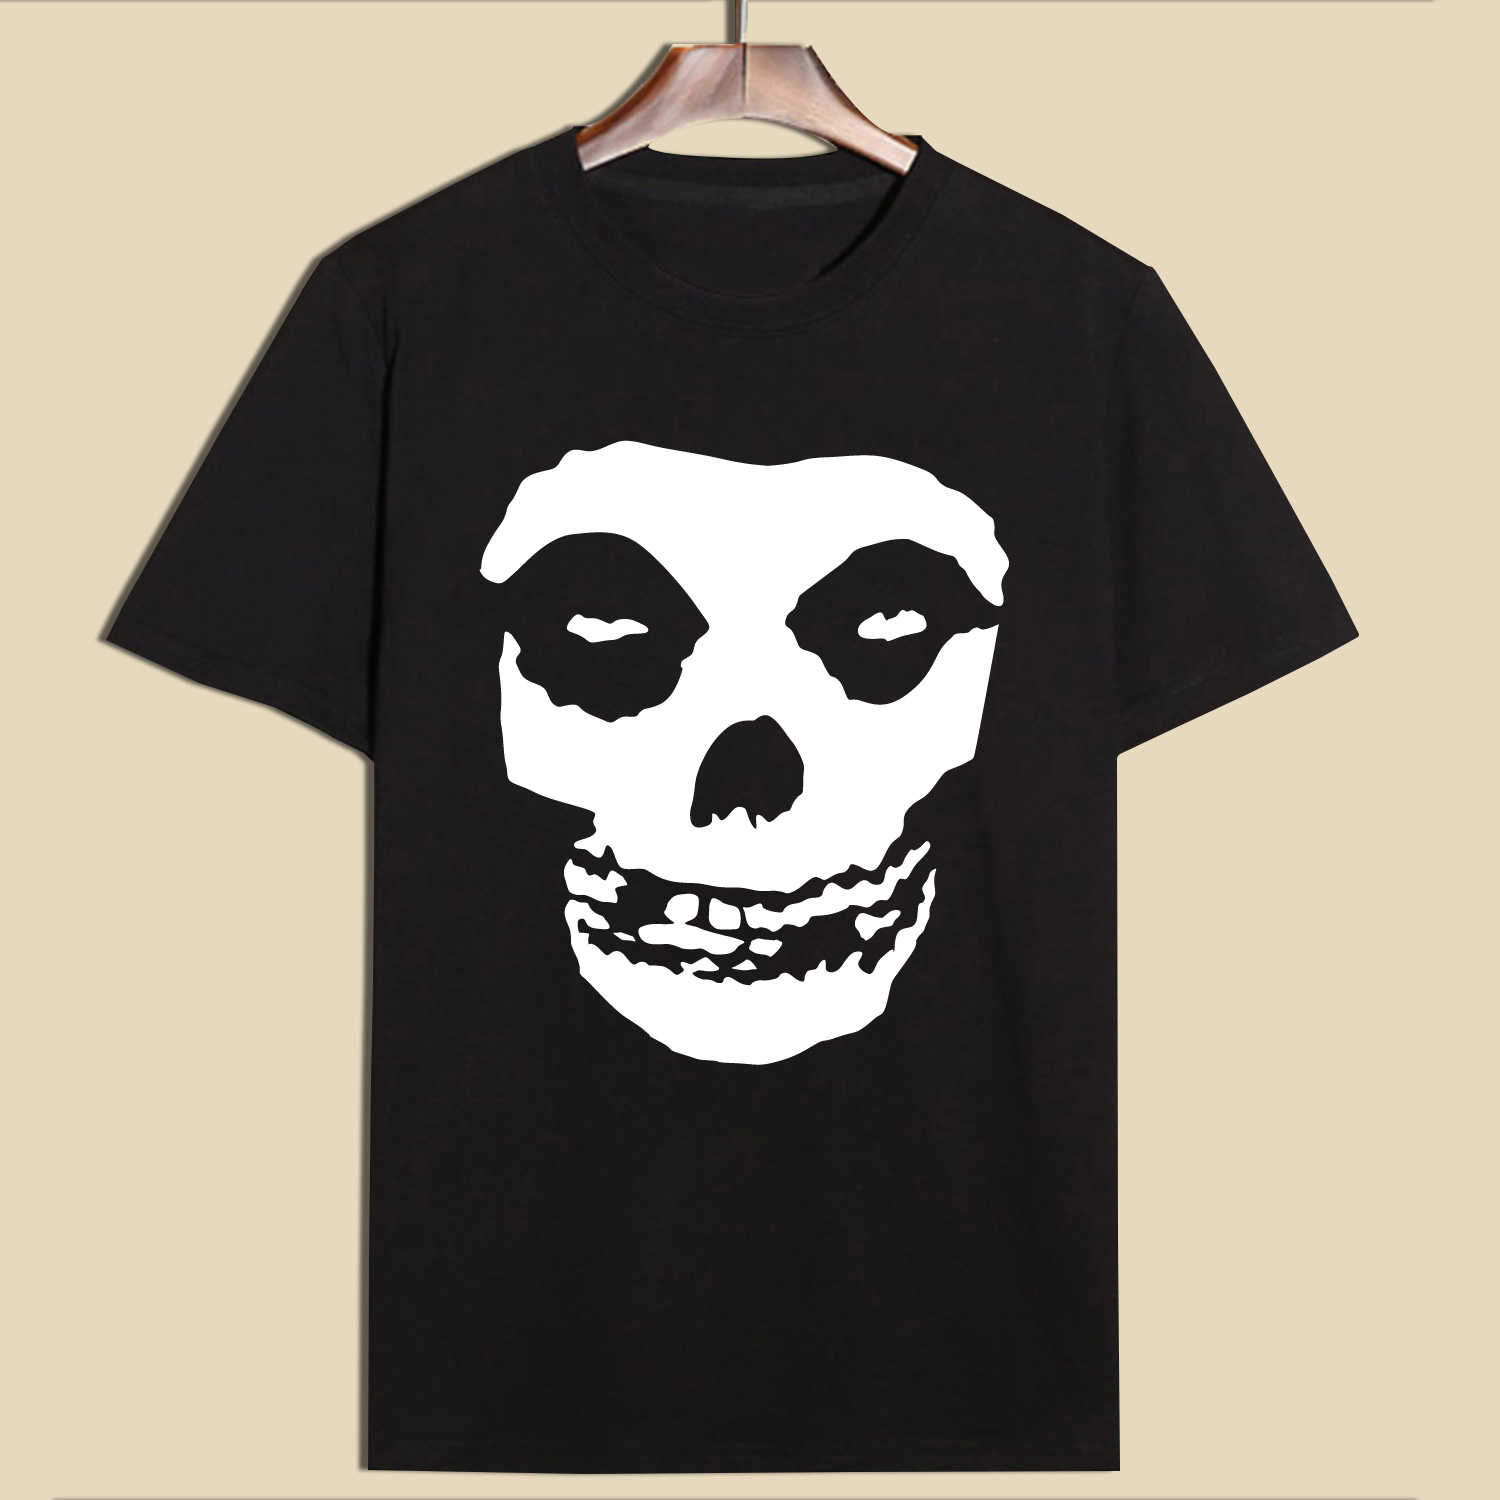 Hillbilly New Arrival 100% Cotton Misfits Skulls Printing   T  -  Shirts   2017 Summer Grey   T     Shirts   Men Short Sleeve O-neck Tees & Tops